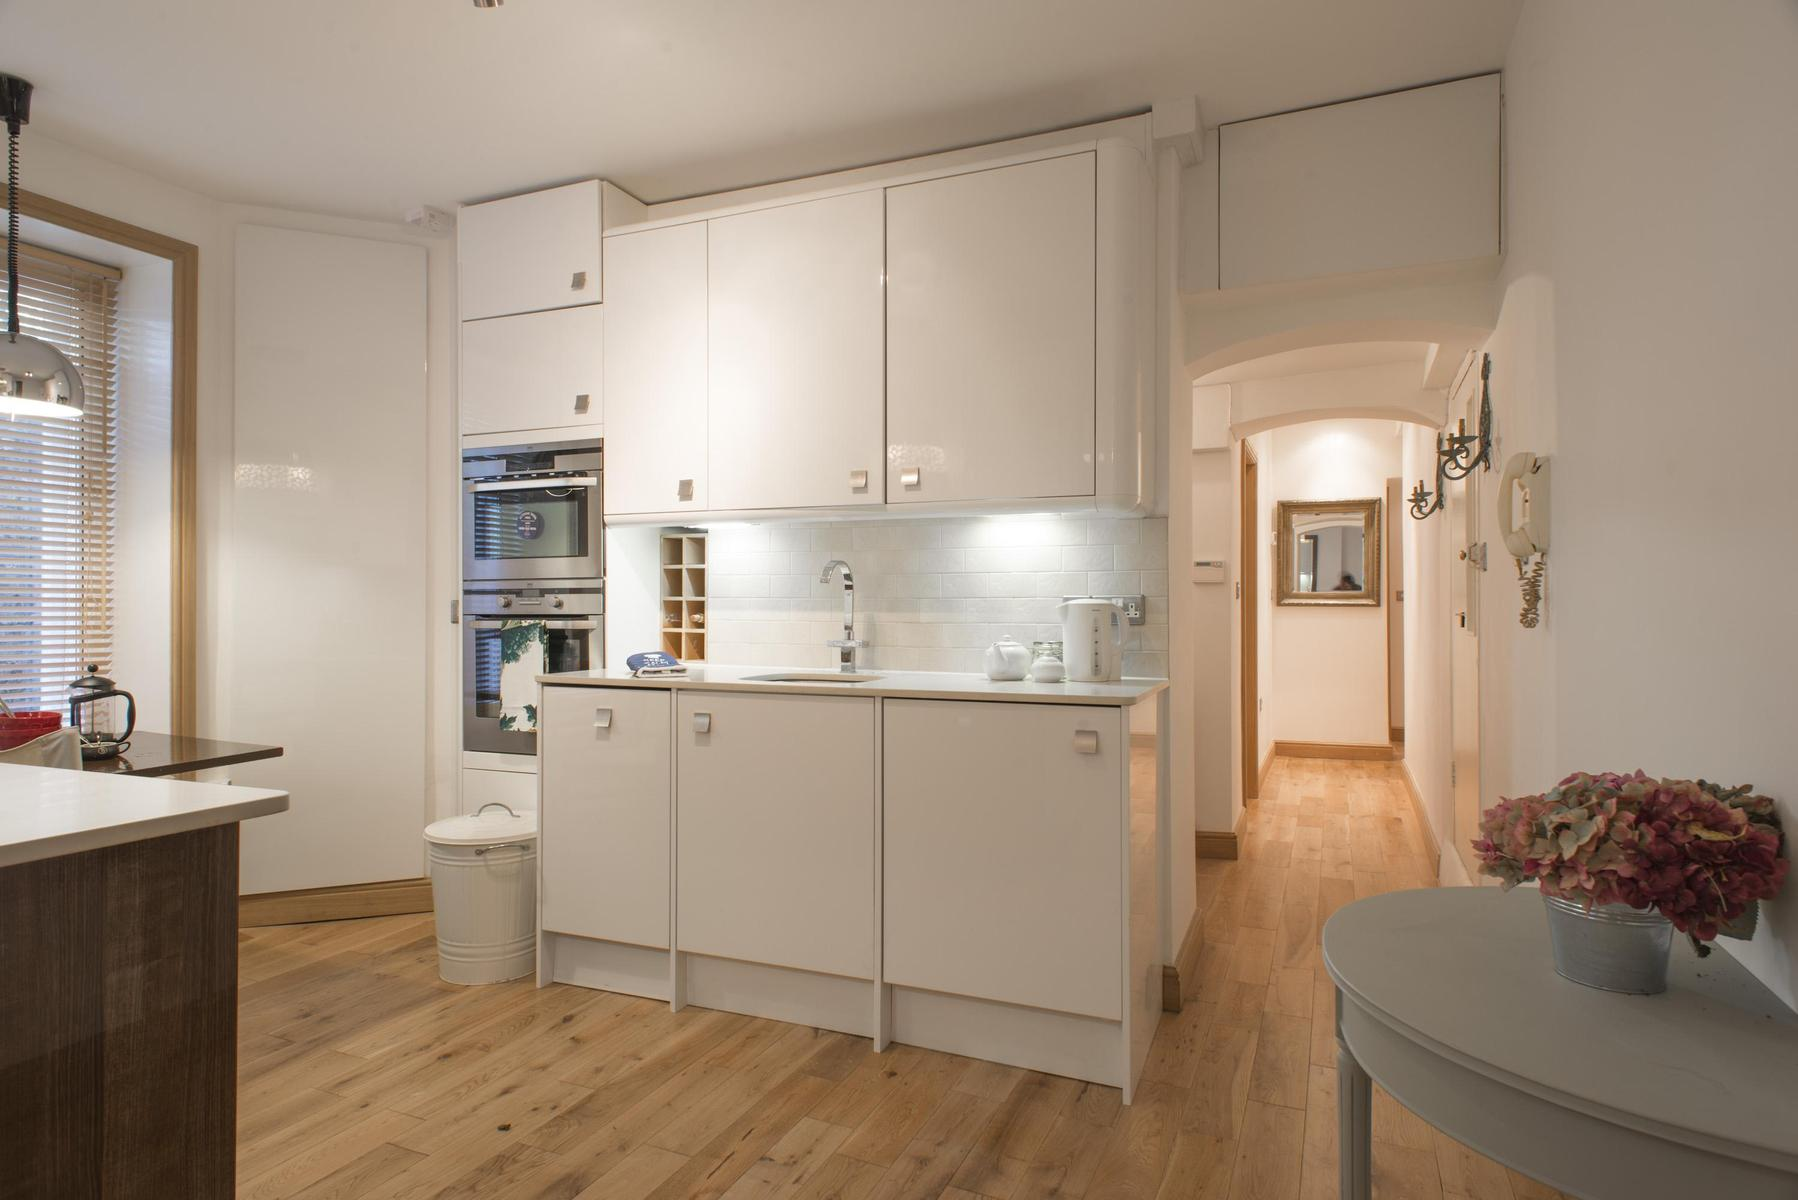 furnished kitchen of London Addison Bridge Place luxury apartment